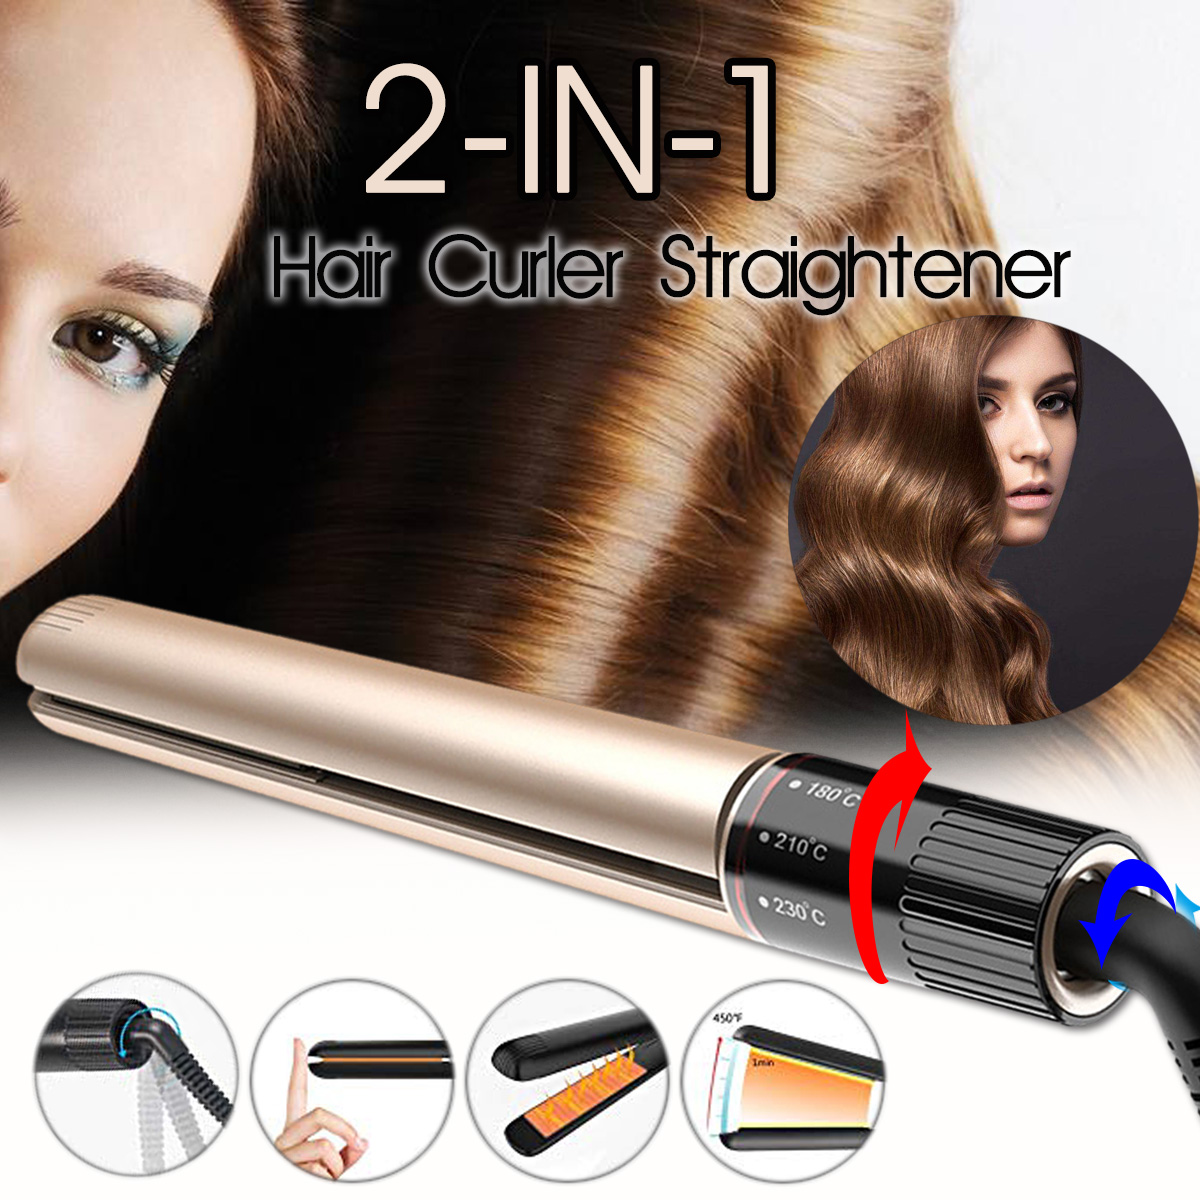 Professional 2-IN-1 Hair Straightener Curler Rotating Adjustment 360 Degree Anti-Winding Multi Temperature Gear Ceramic Iron cultural adjustment among iranian professional students in india